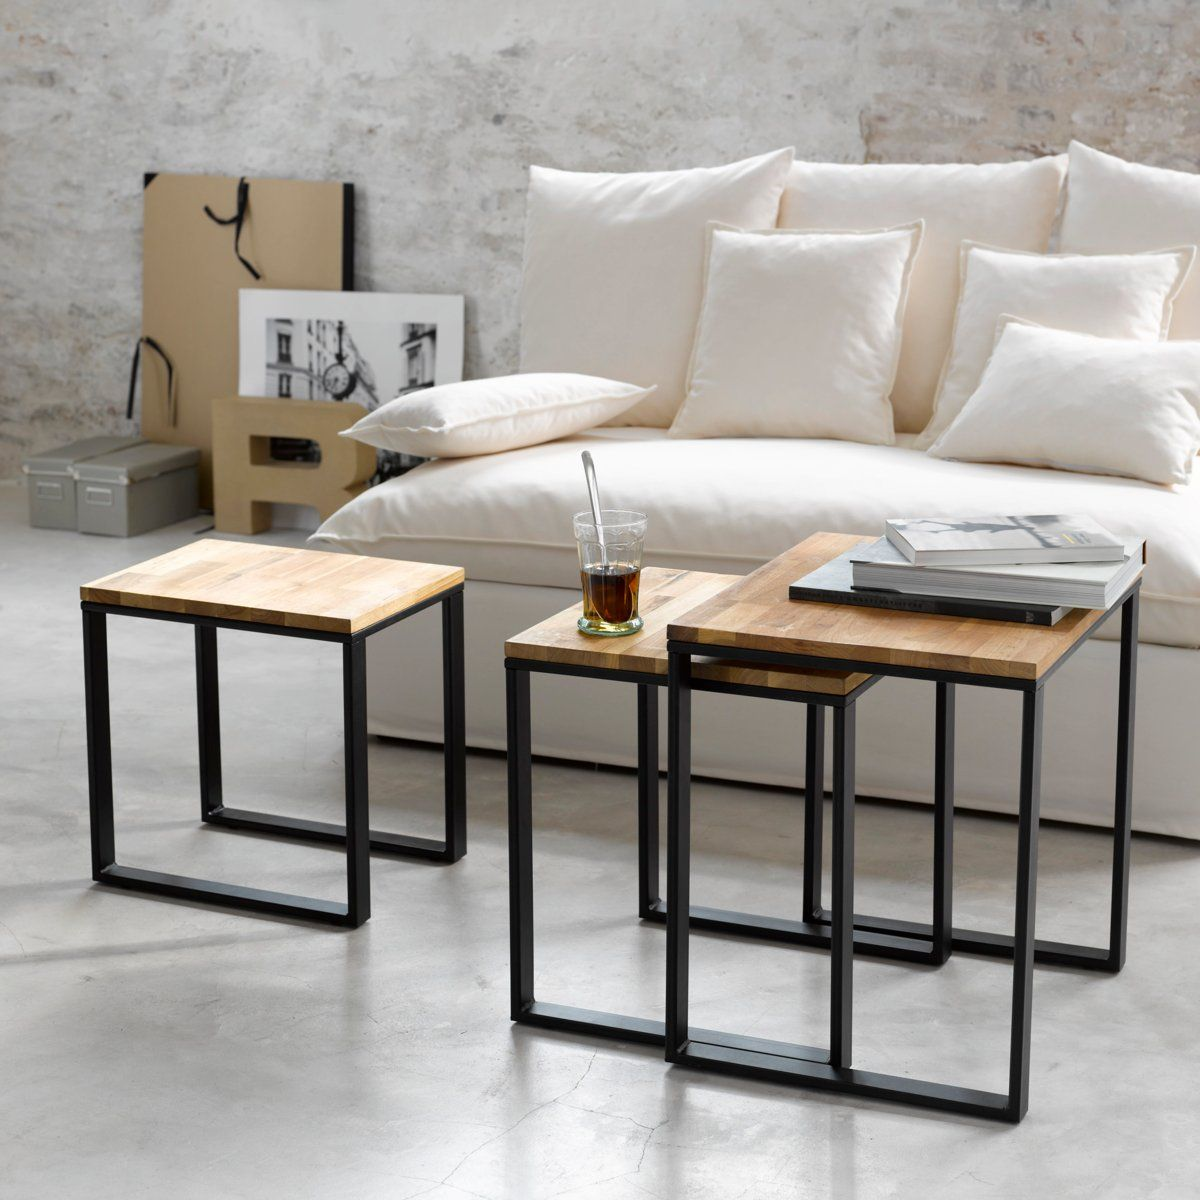 Table basse rep rage nouvelle tendance 1 le blog d co for Table noir et bois